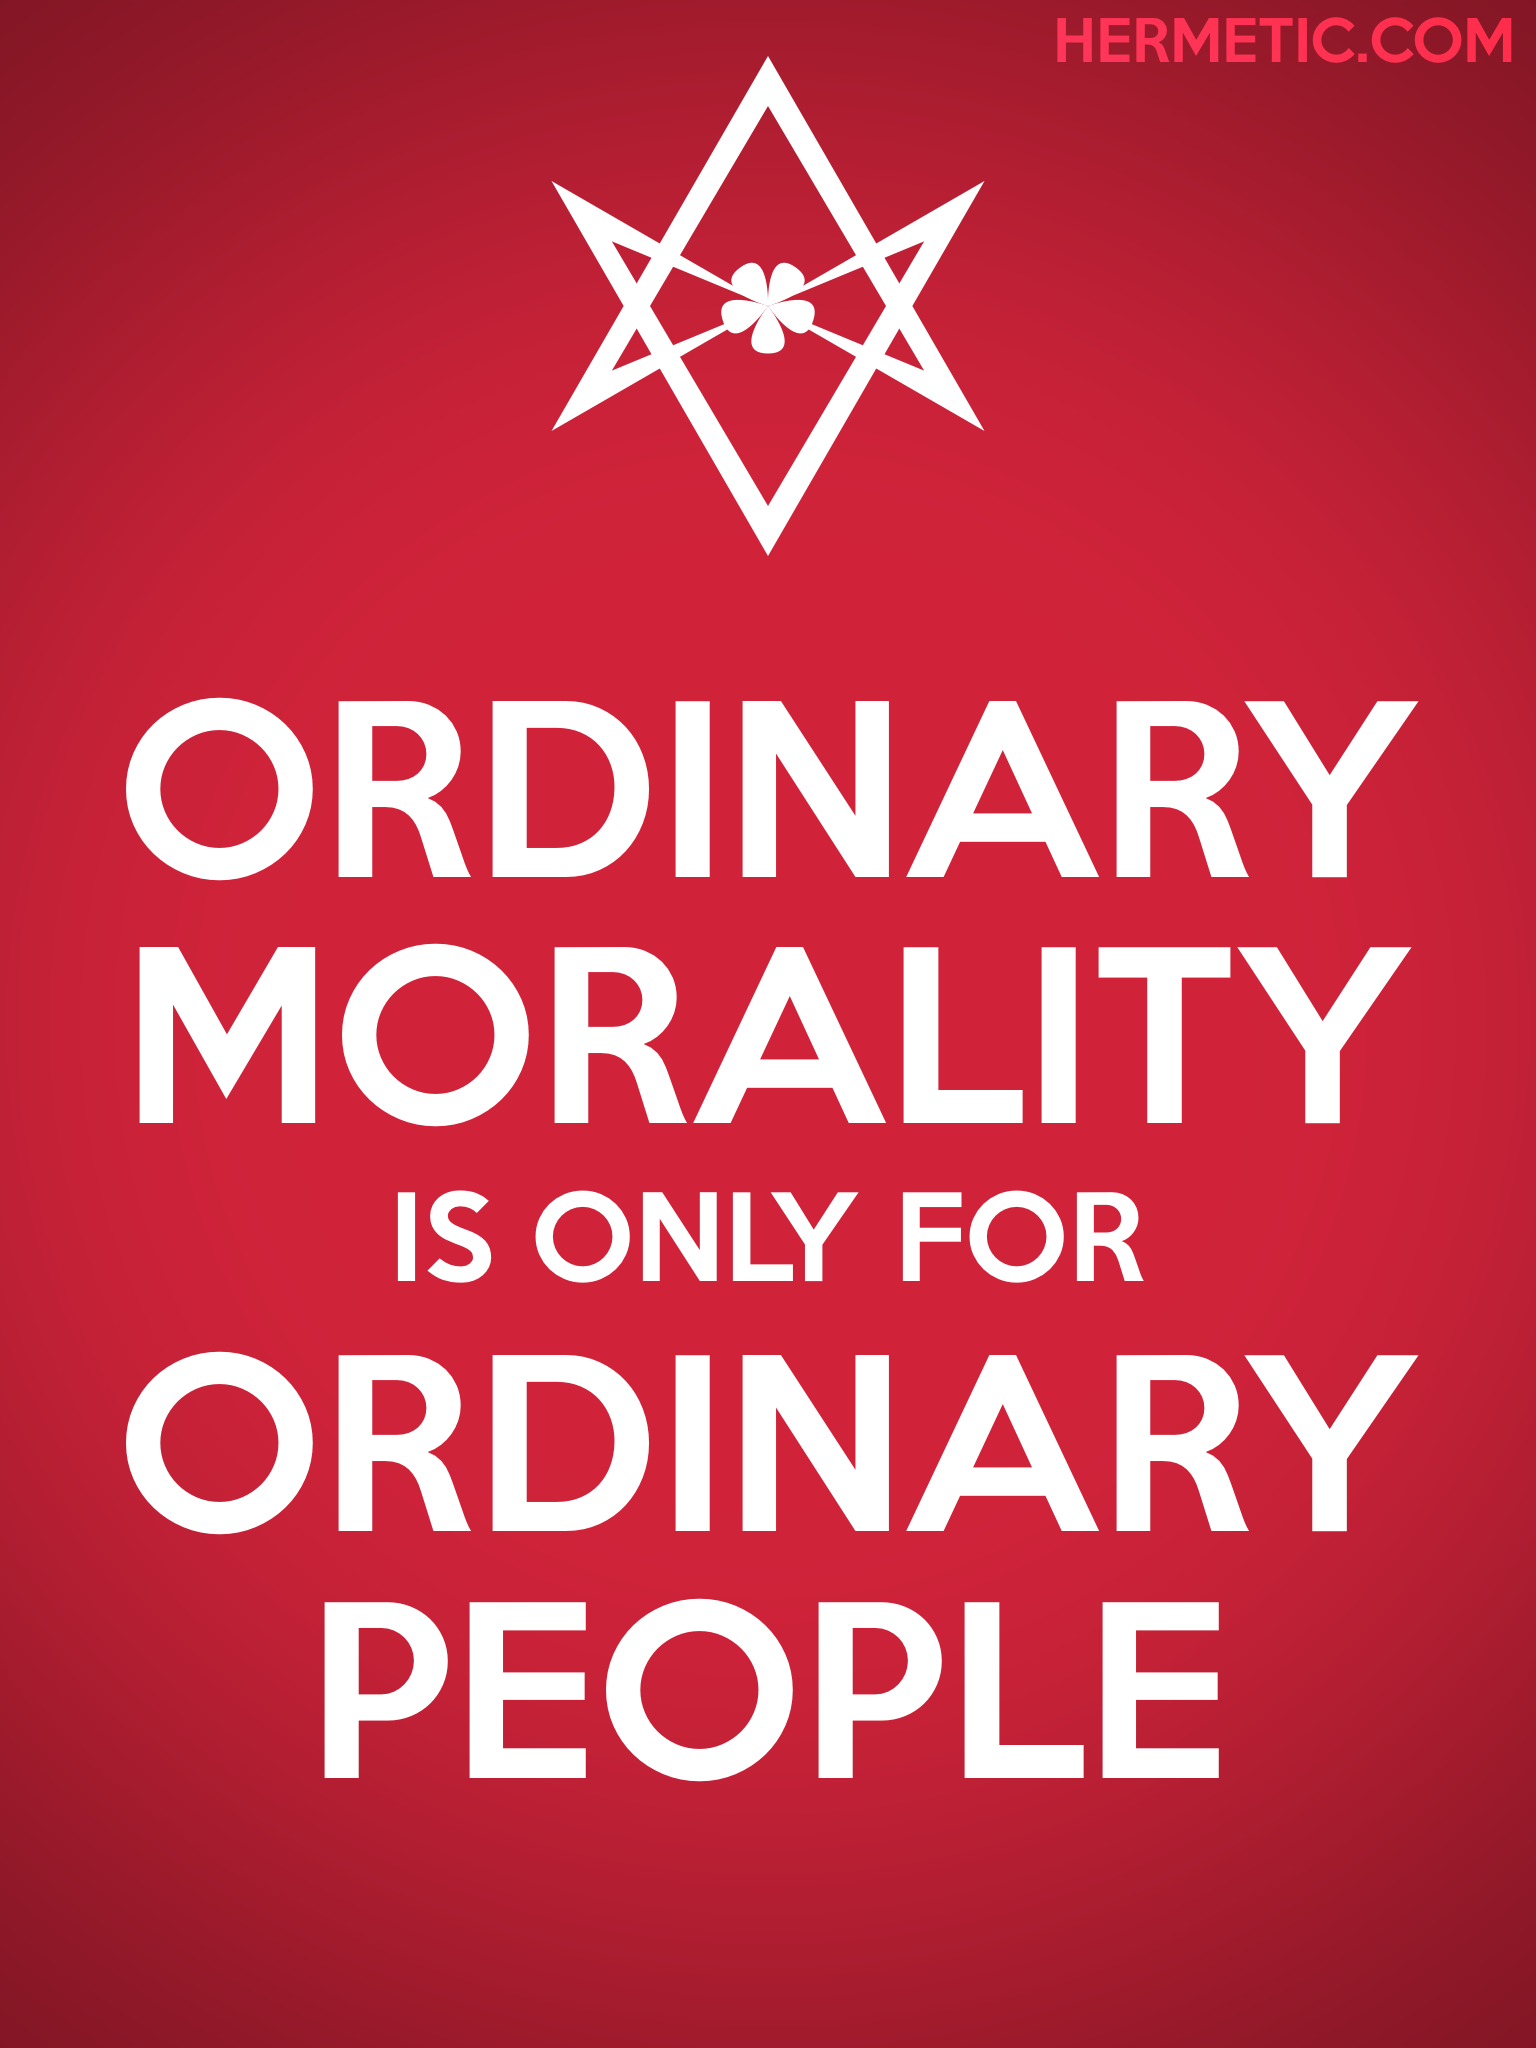 Unicursal ORDINARY MORALITY Propaganda Poster from Hermetic Library Office of the Ministry of Information